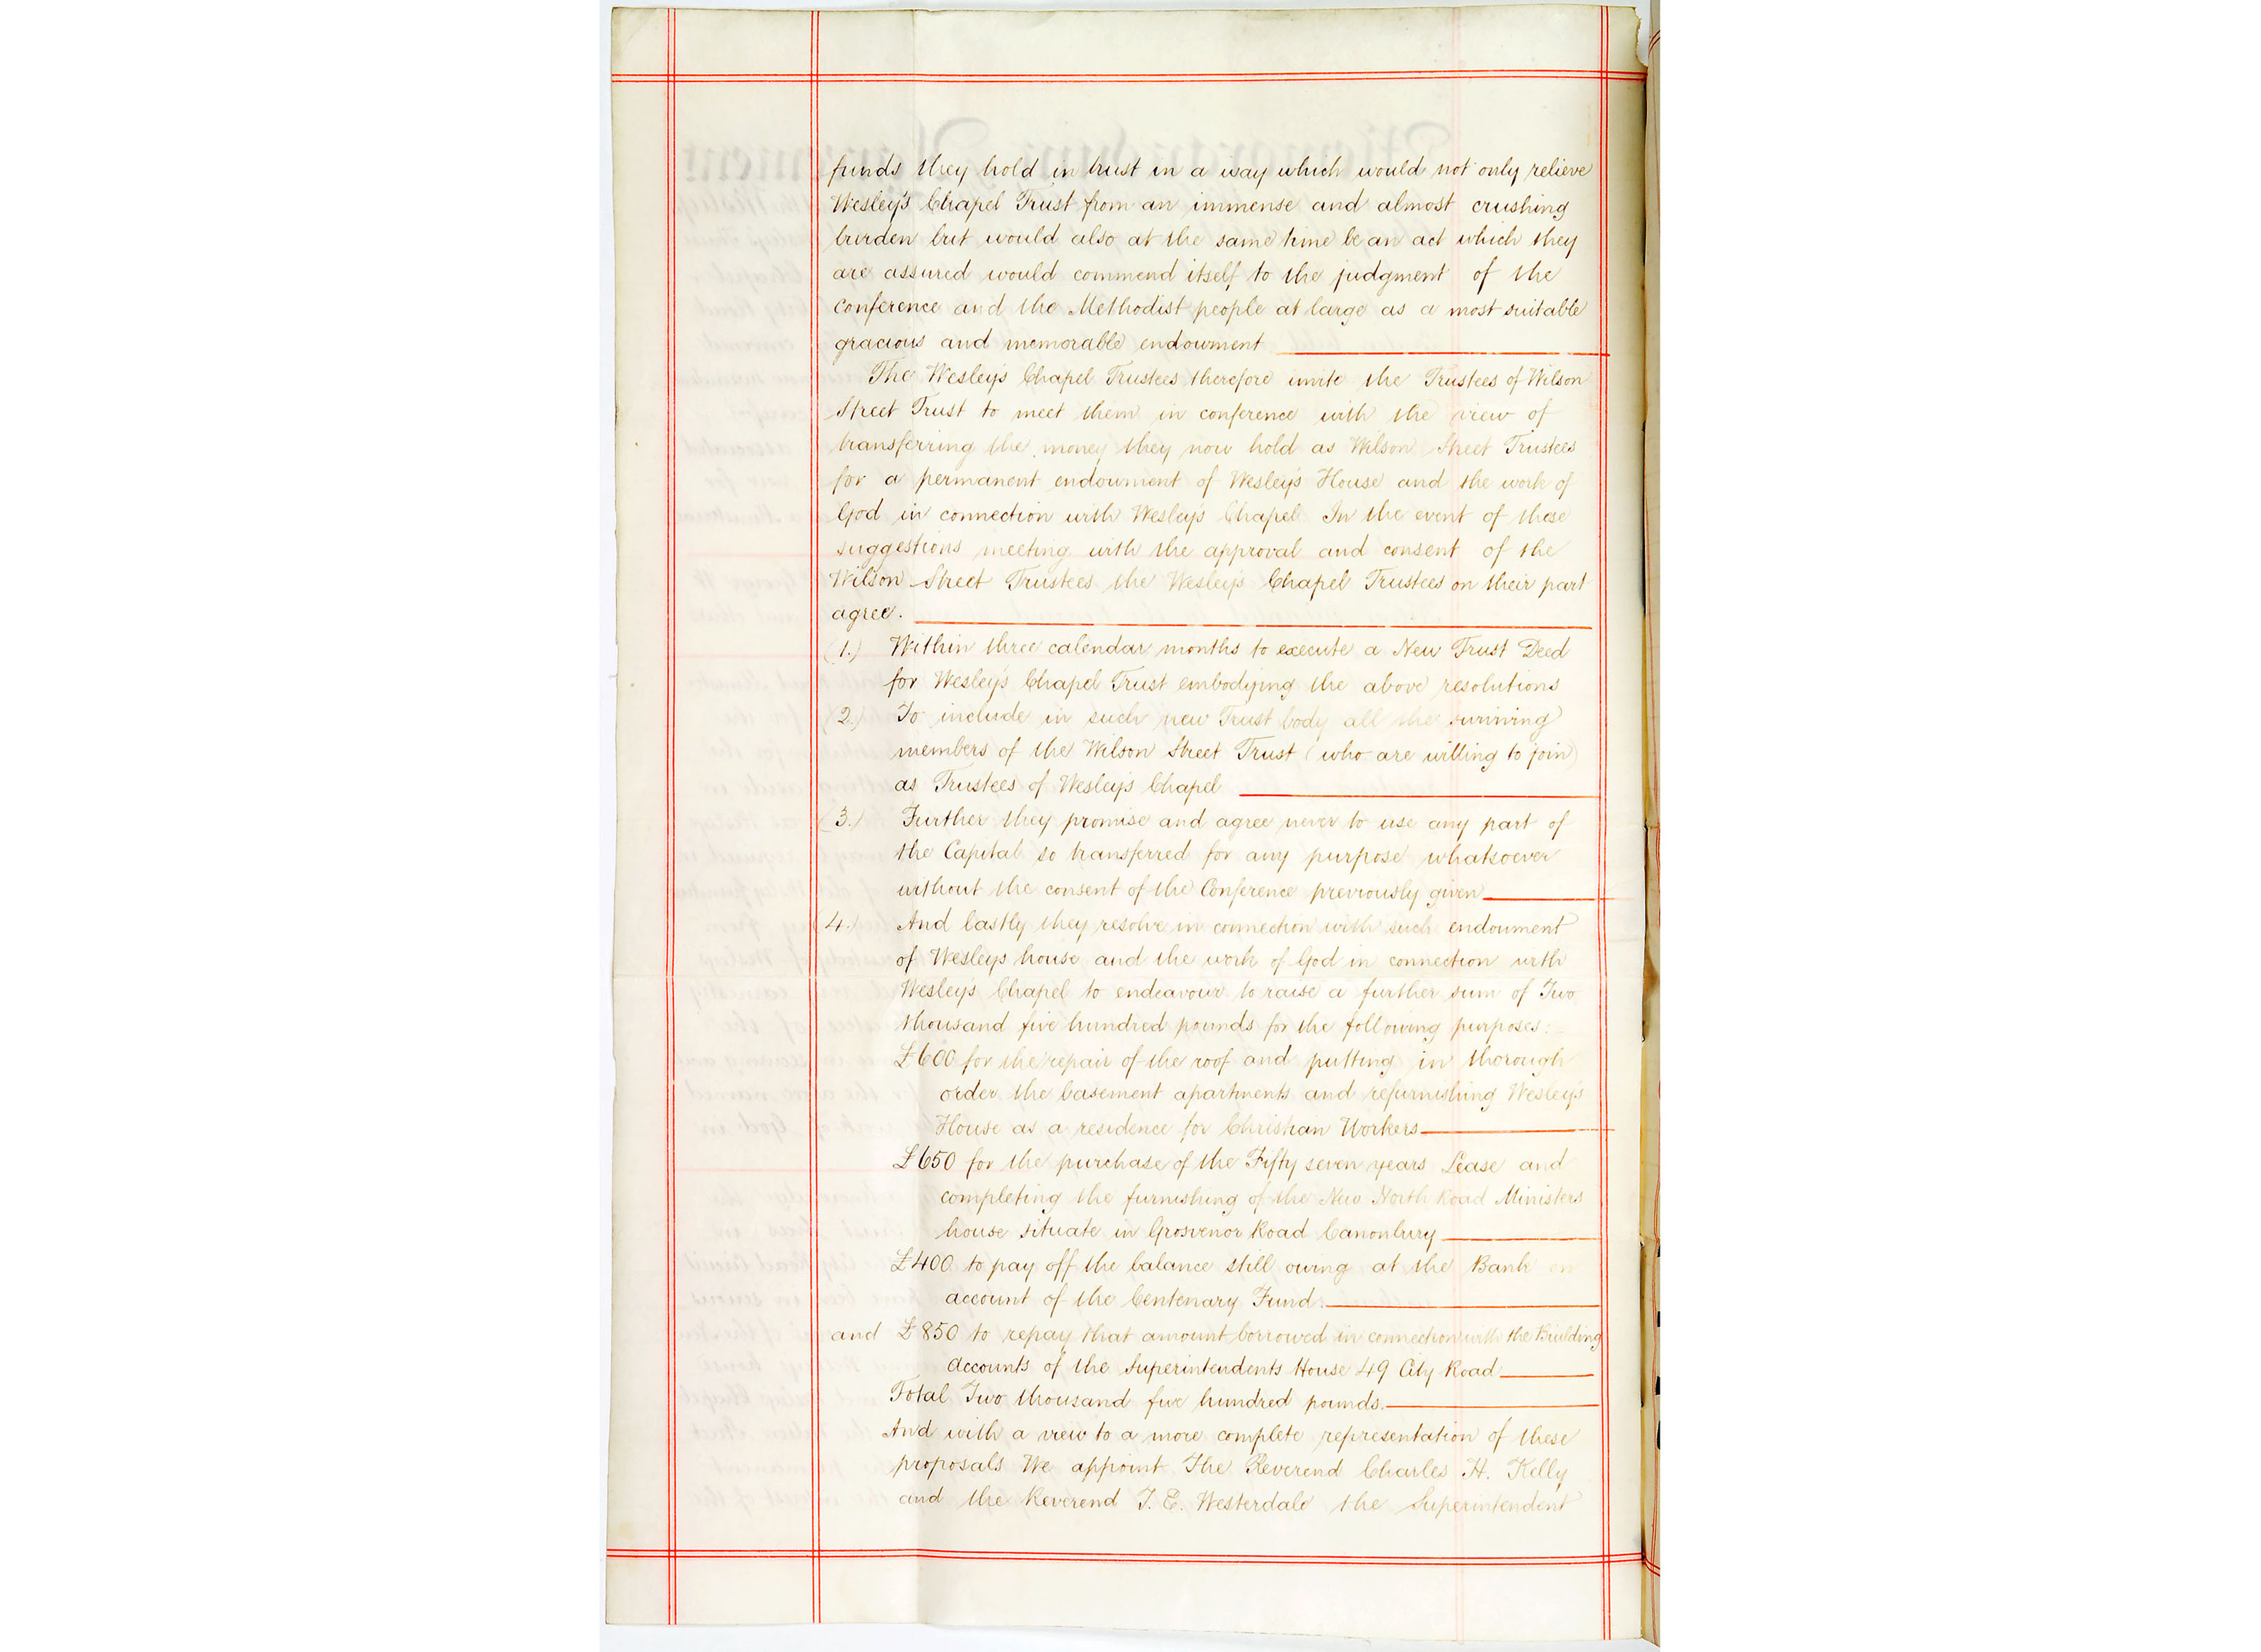 John Wesley House endowment document